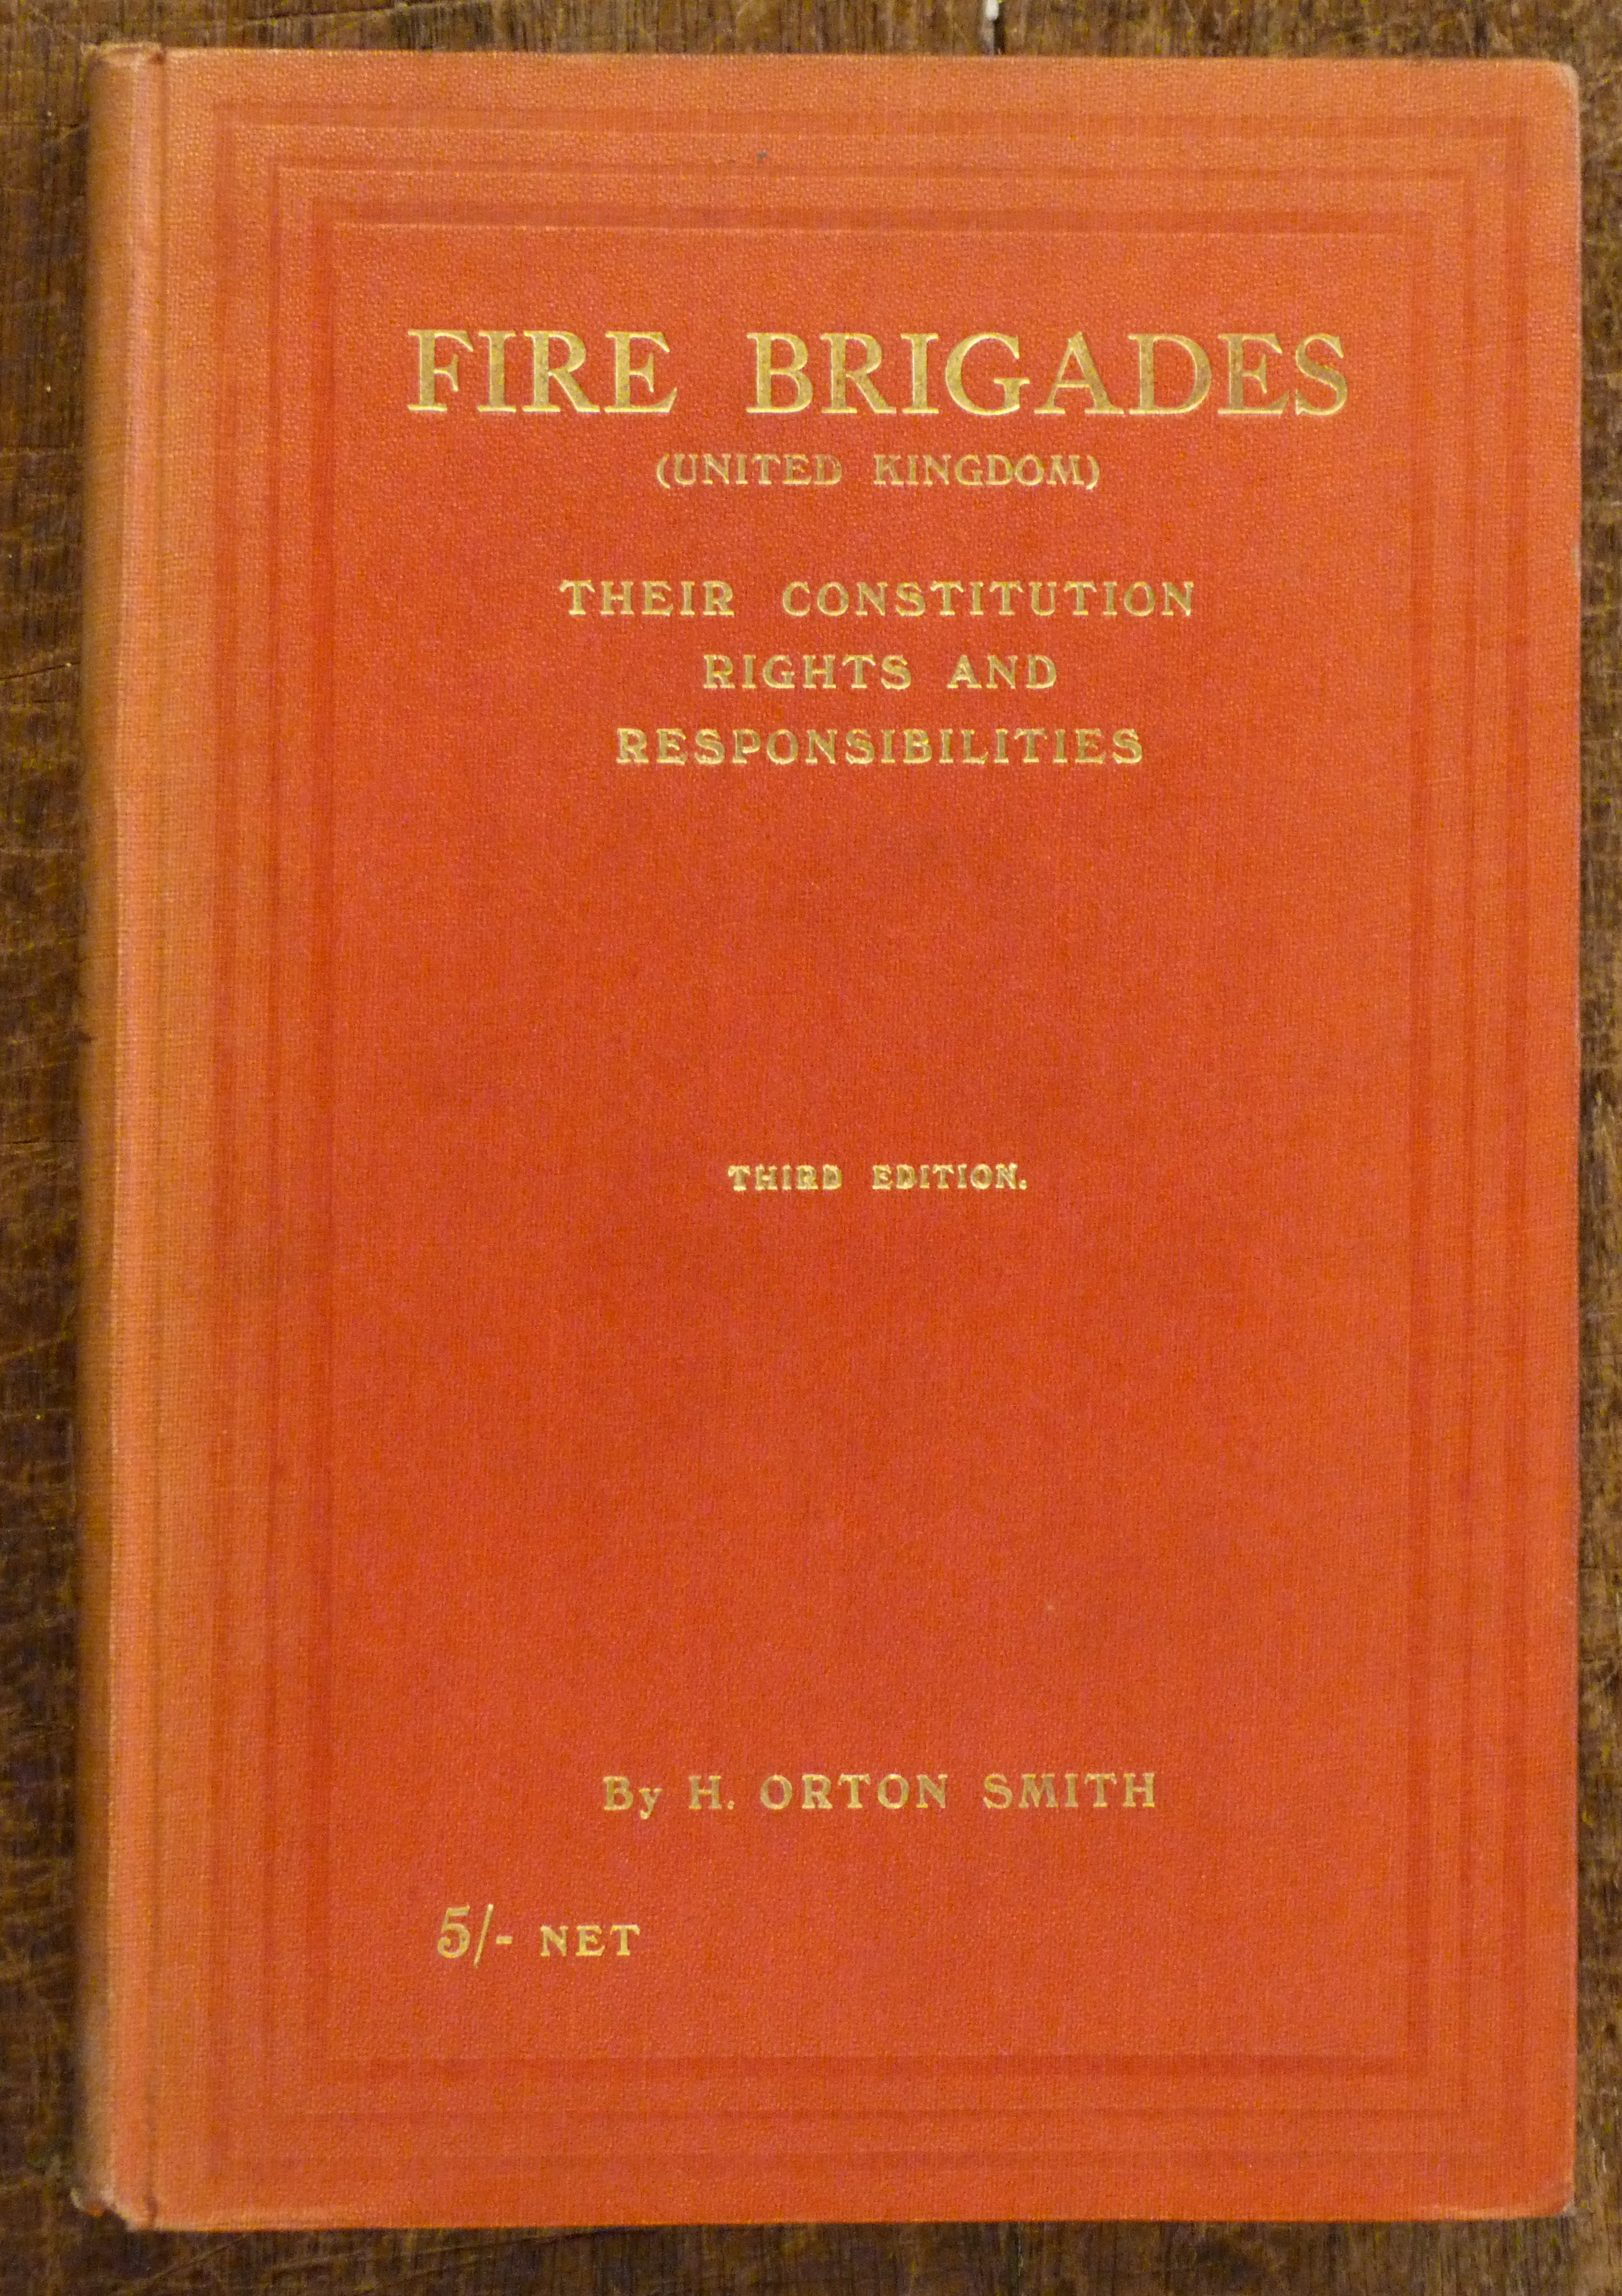 Image for Fire Brigades (United Kingdom) Their Constitution Rights and Responsibilities